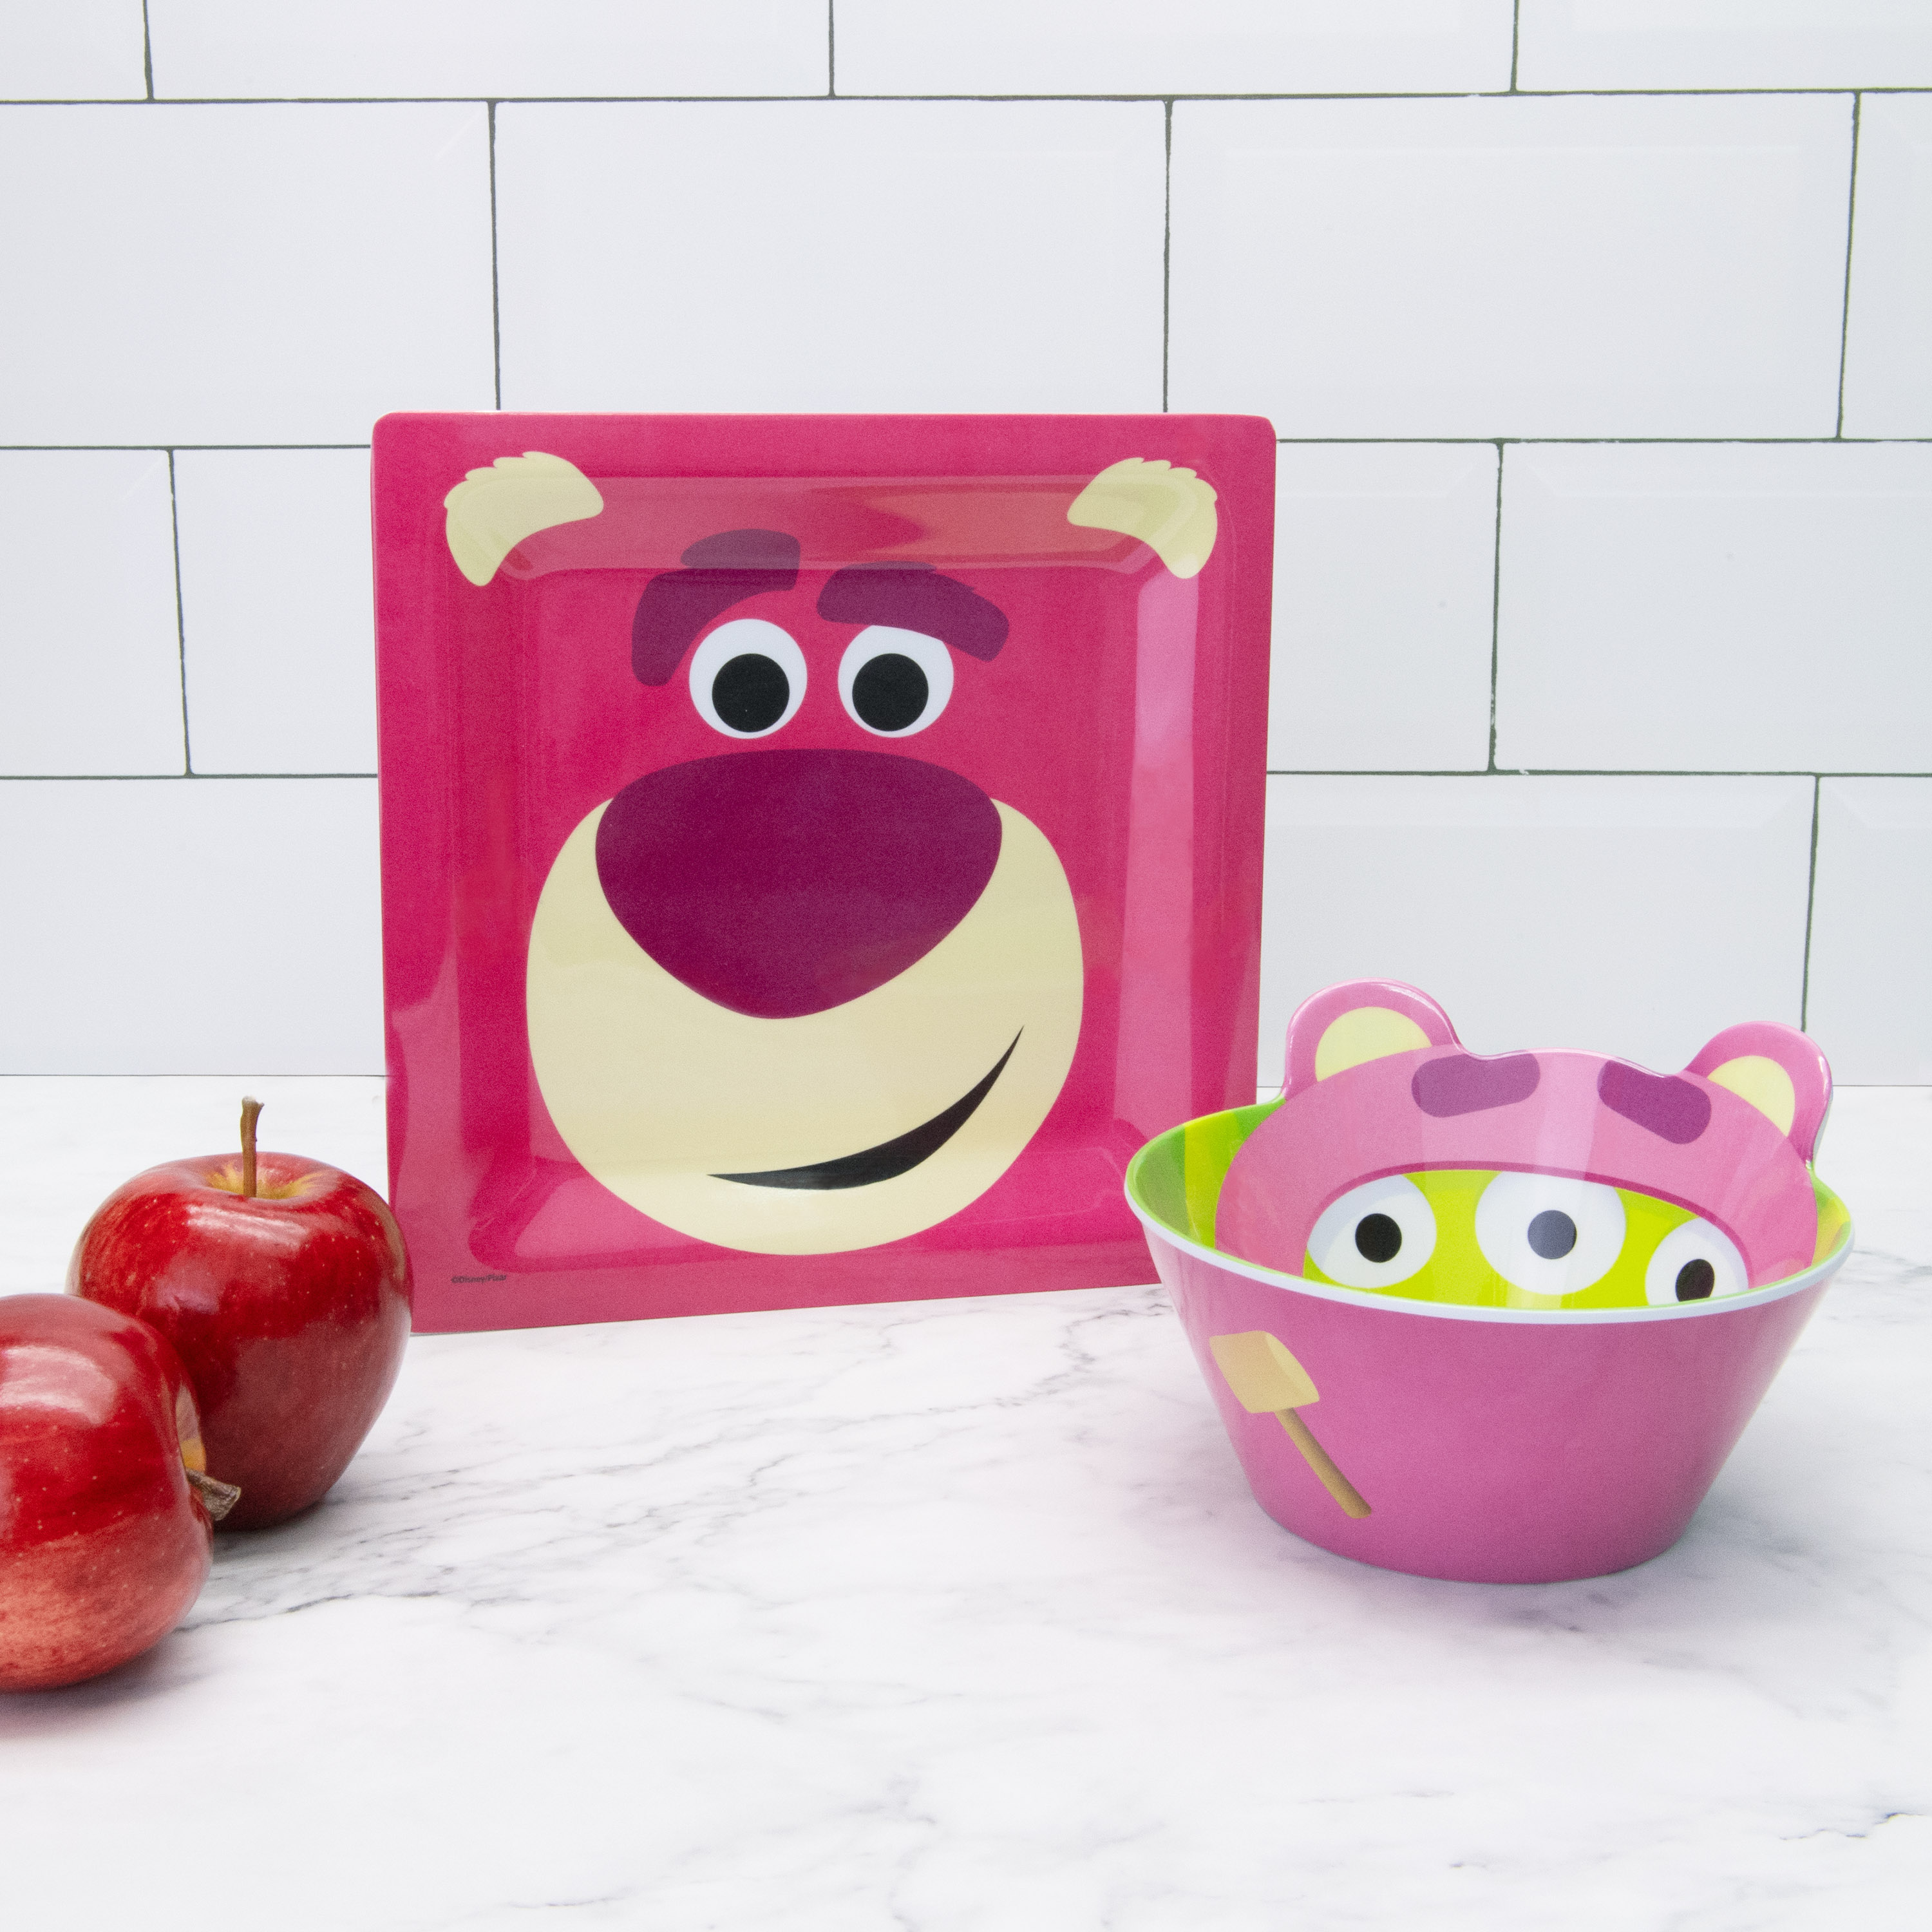 Disney and Pixar Toy Story 4 Plate and Bowl Set, Lotso, 2-piece set slideshow image 6